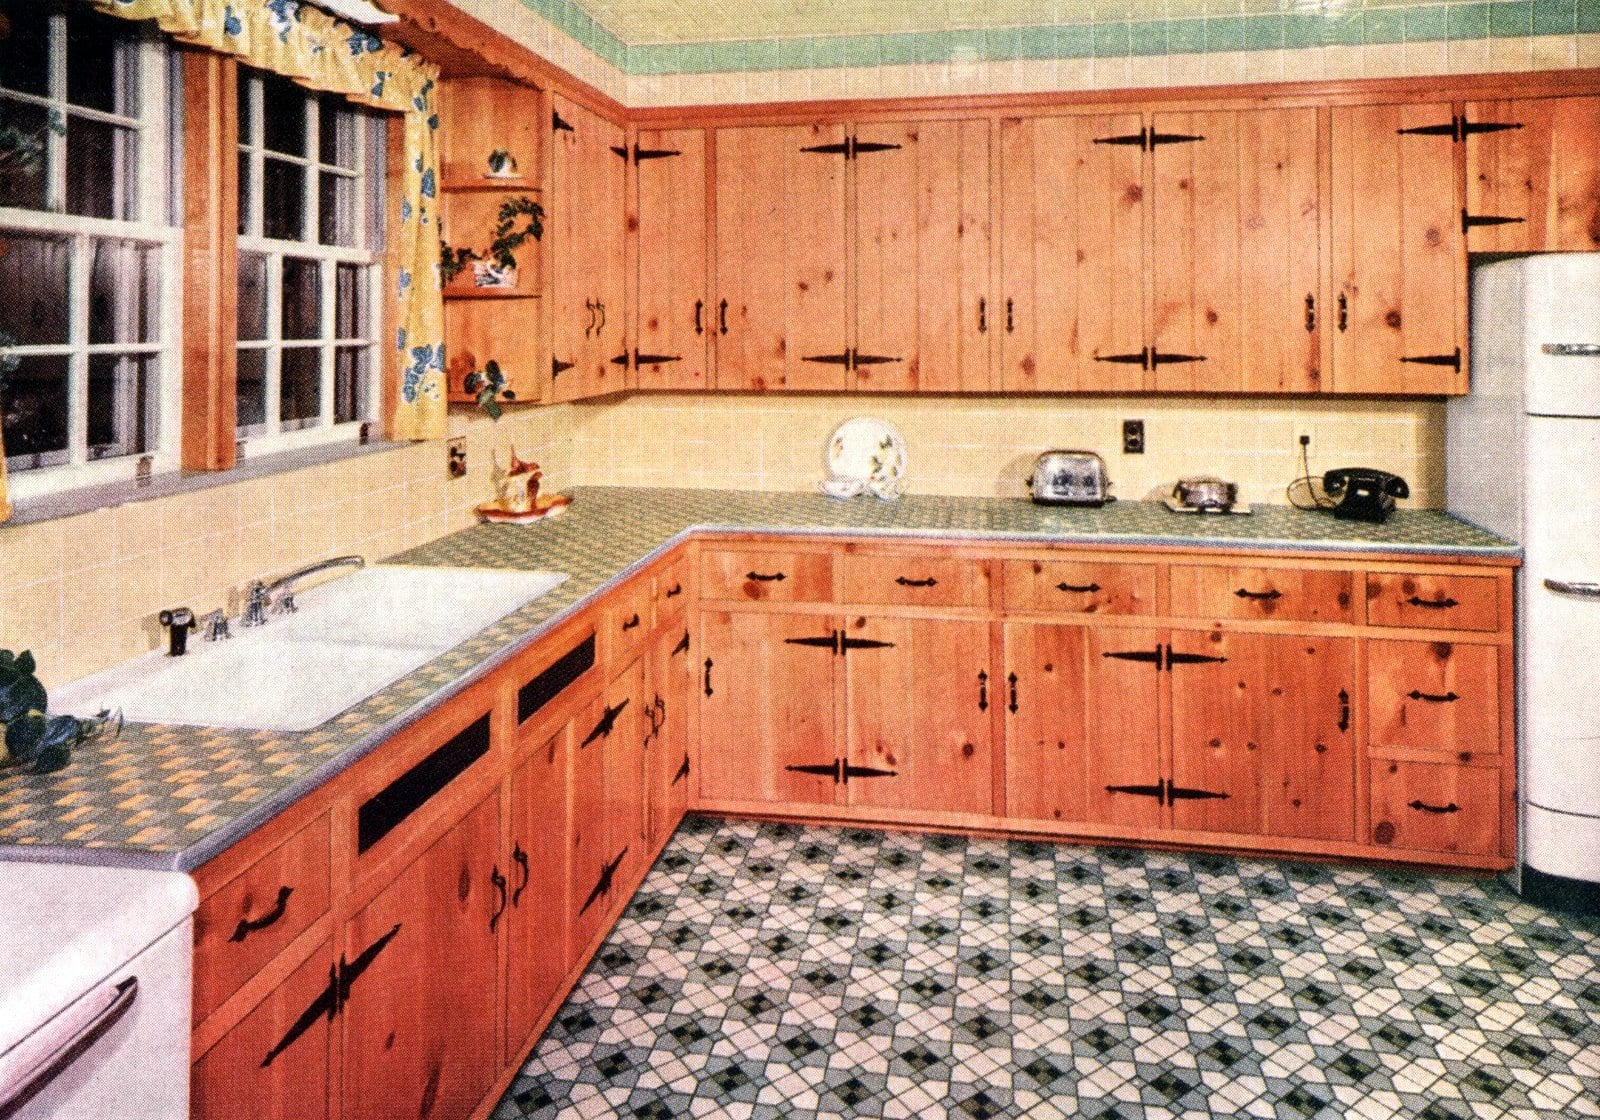 Vintage 1953 kitchen decor with tile patterns and knotty pine cabinetry